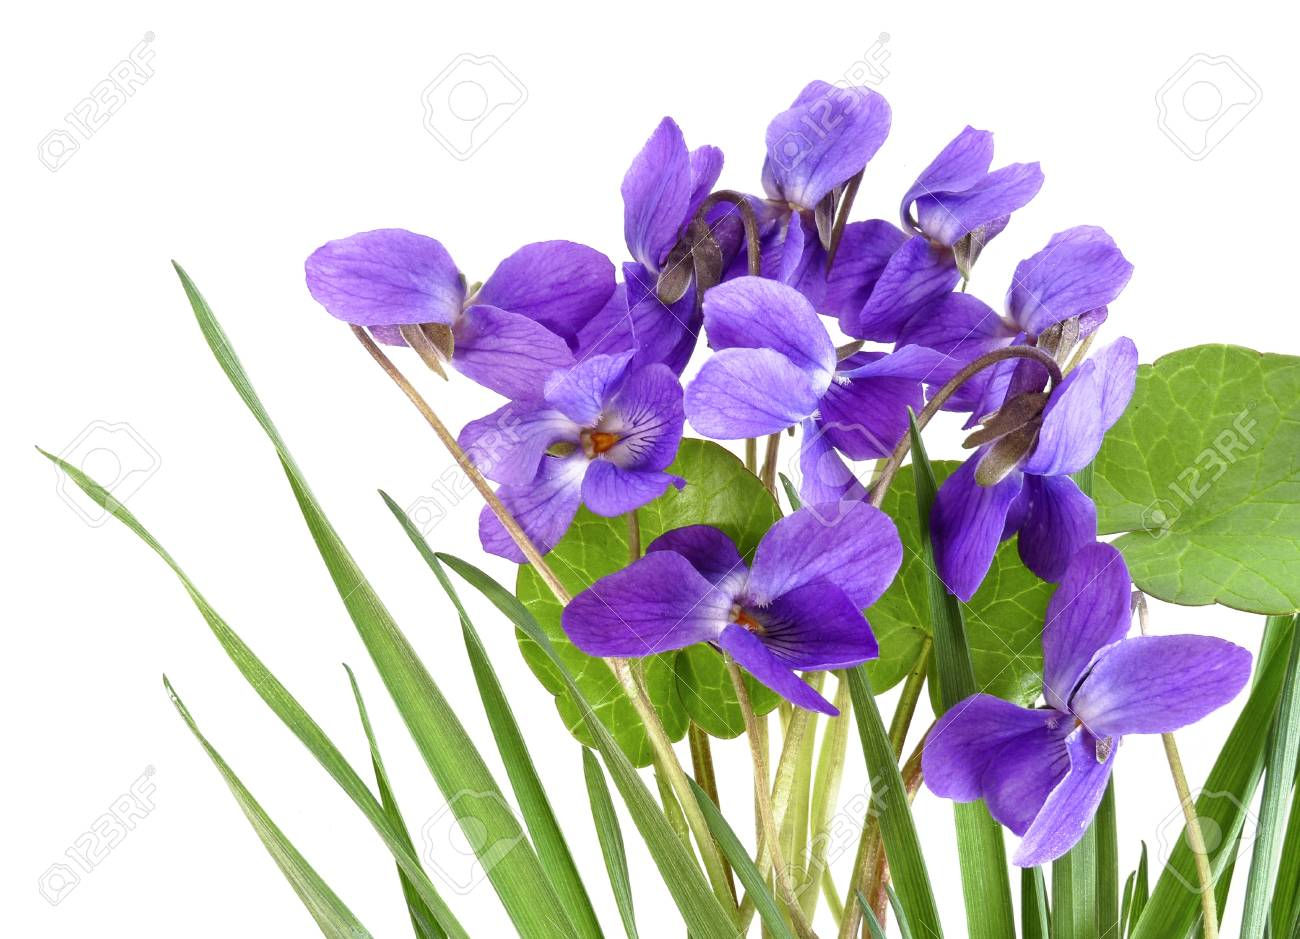 violets in a grass Stock Photo - 12884419